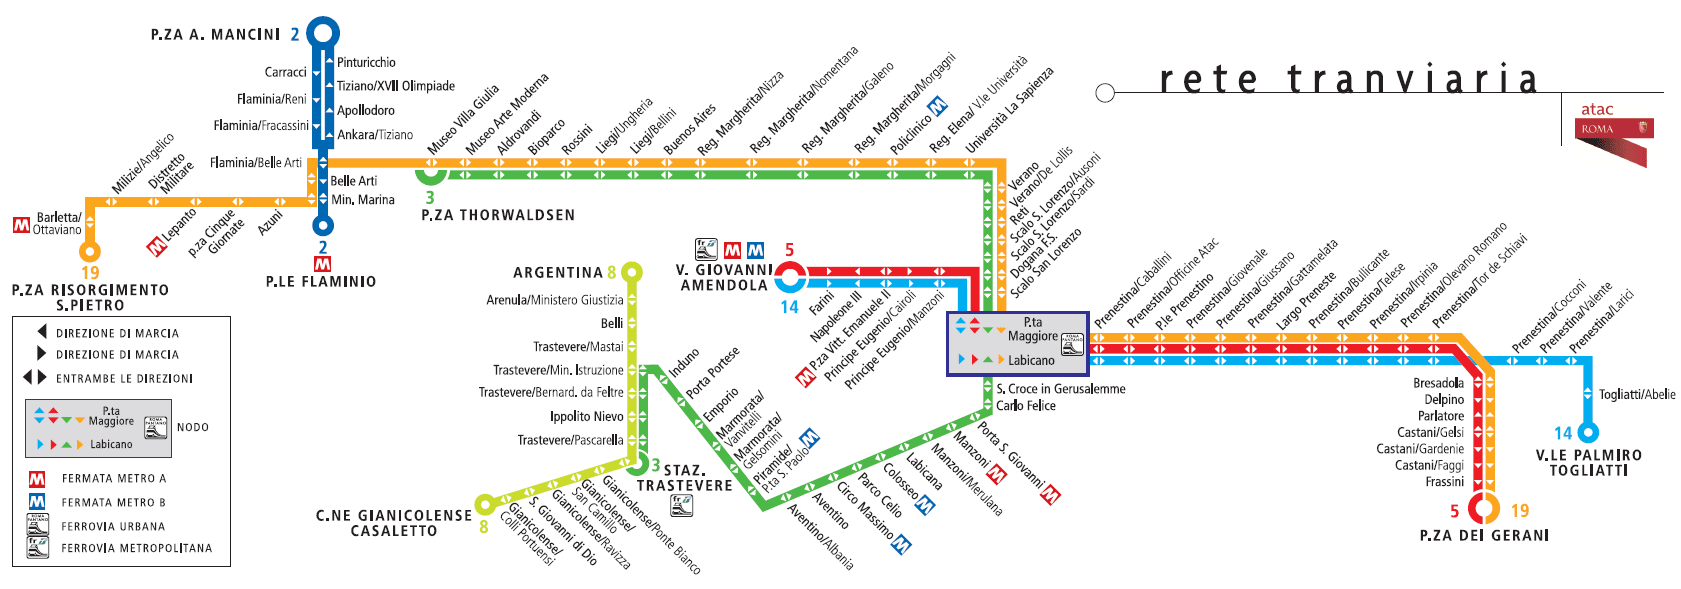 Map Of Italy Train Stations.Rome Trams Lines Hours Fares And Map Of The Tram Network In Rome